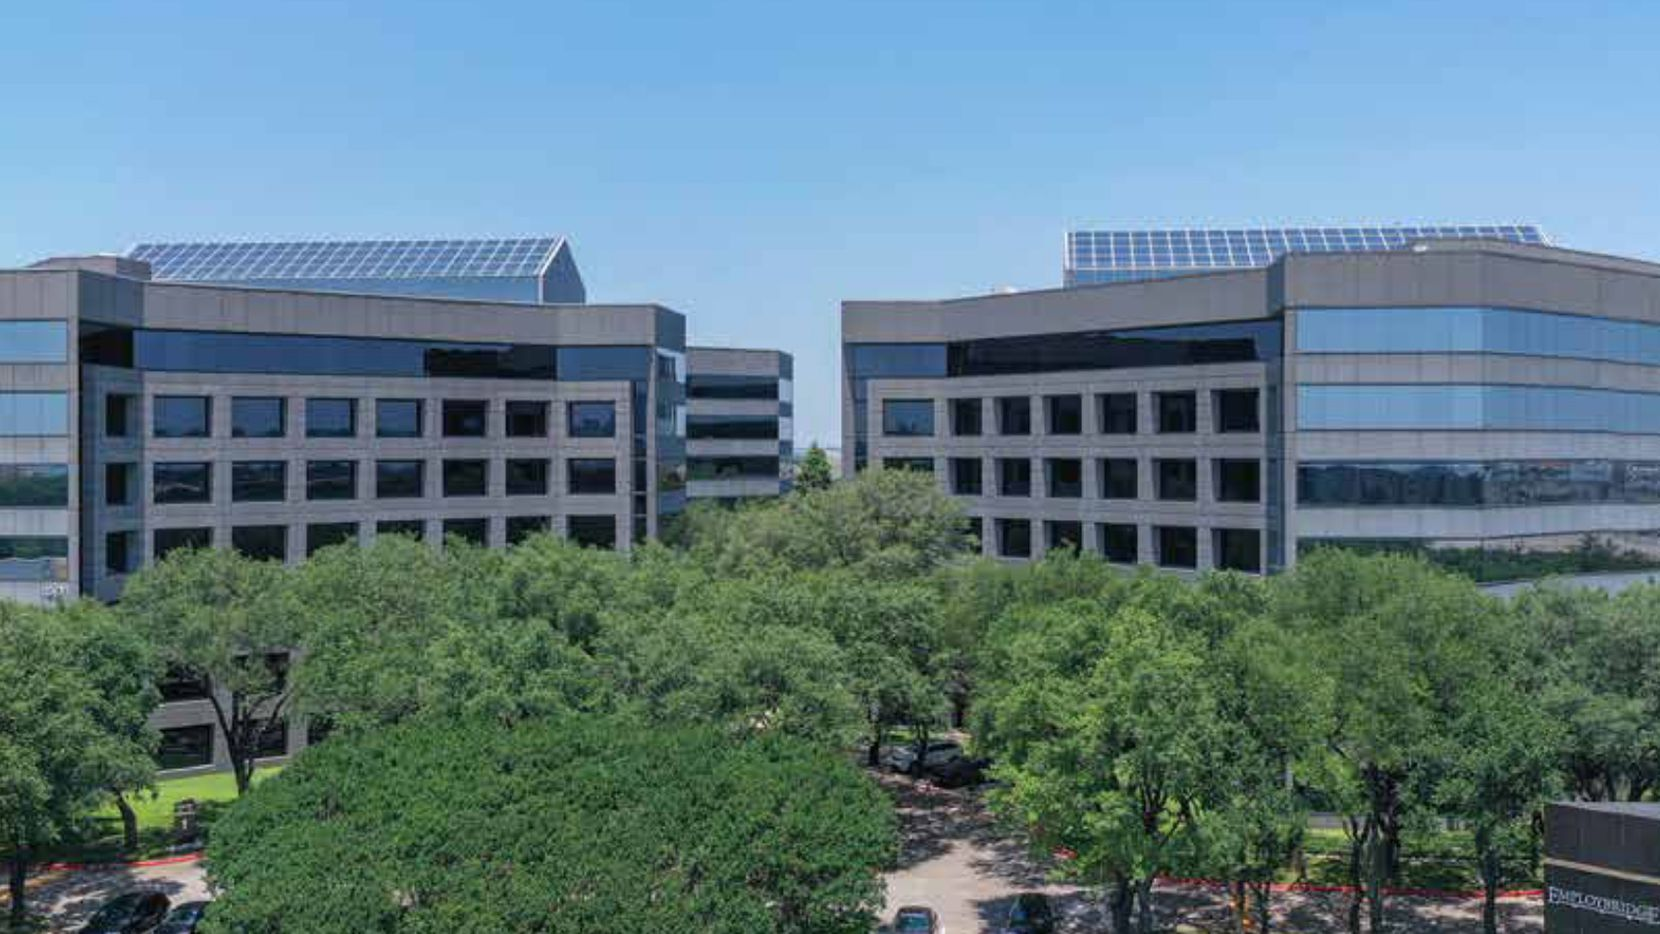 The Park West buildings are on LBJ Freeway northwest of Dallas.